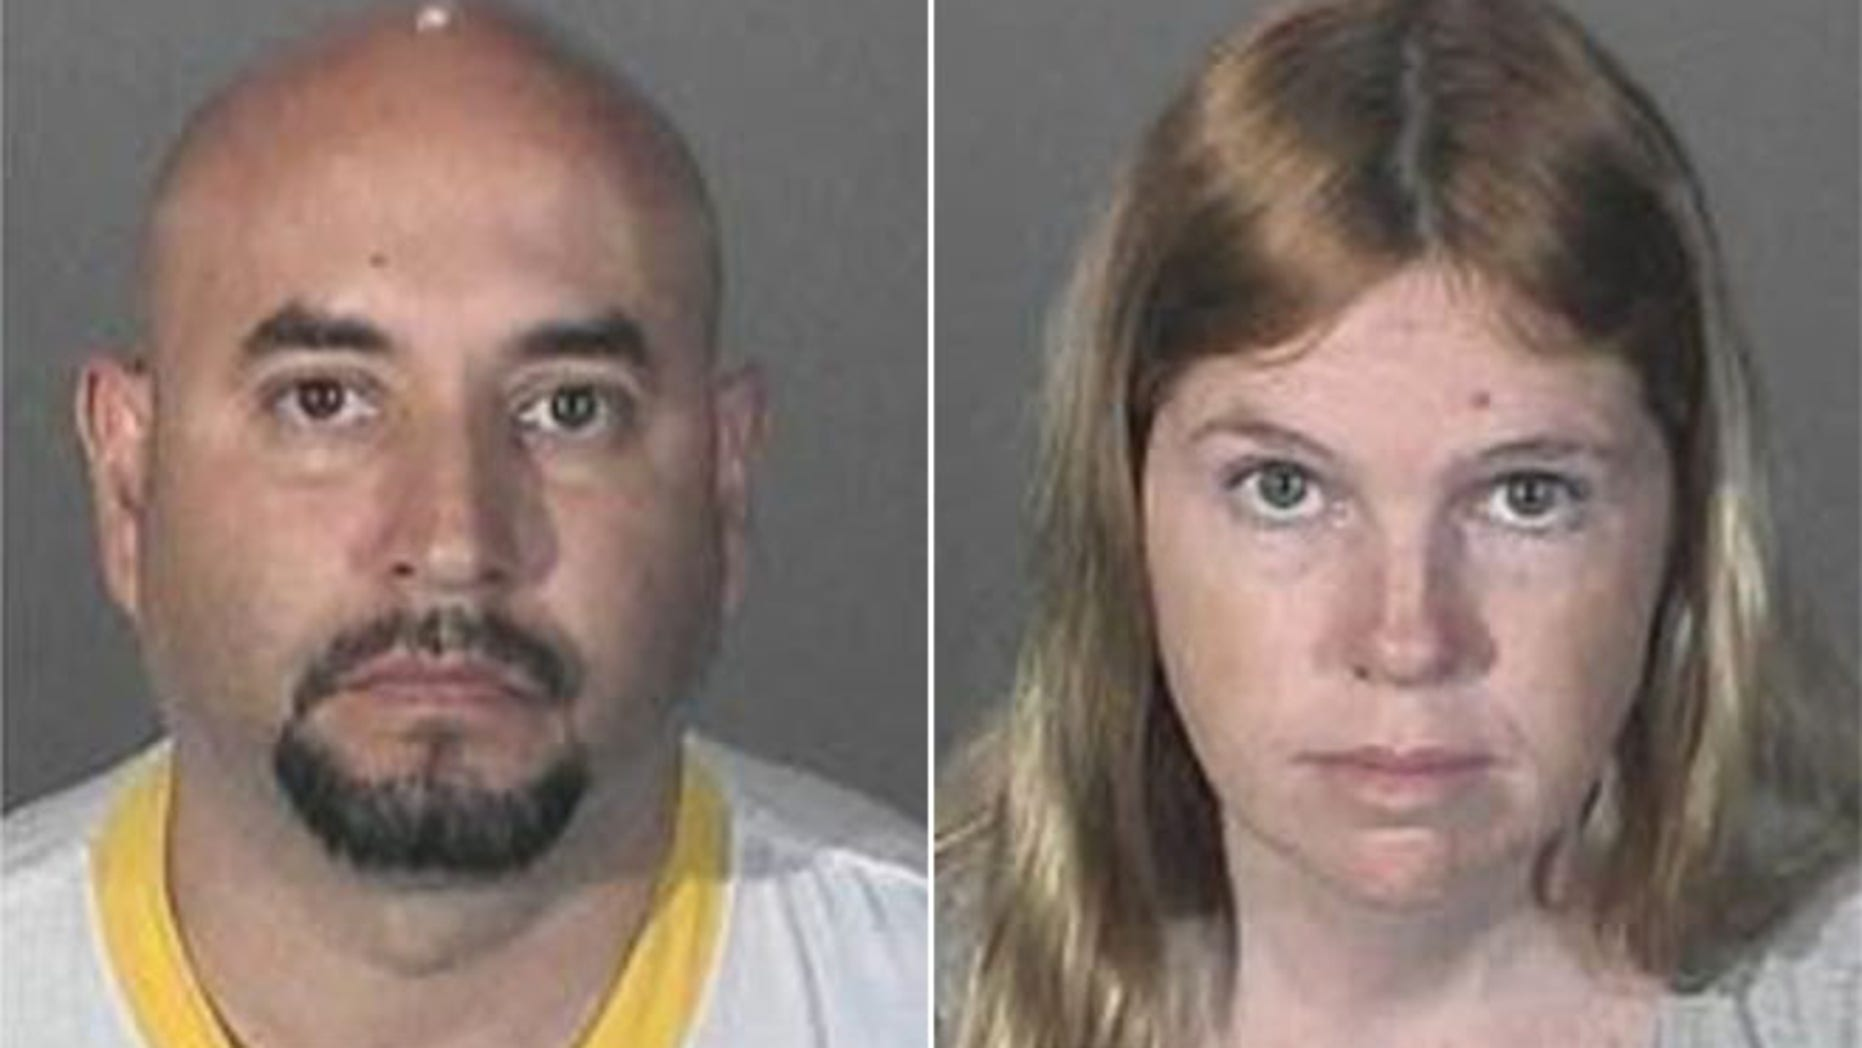 Suspects Francisco Avendano and Jacqueline Wadsworth (LA County Sheriff's Office)